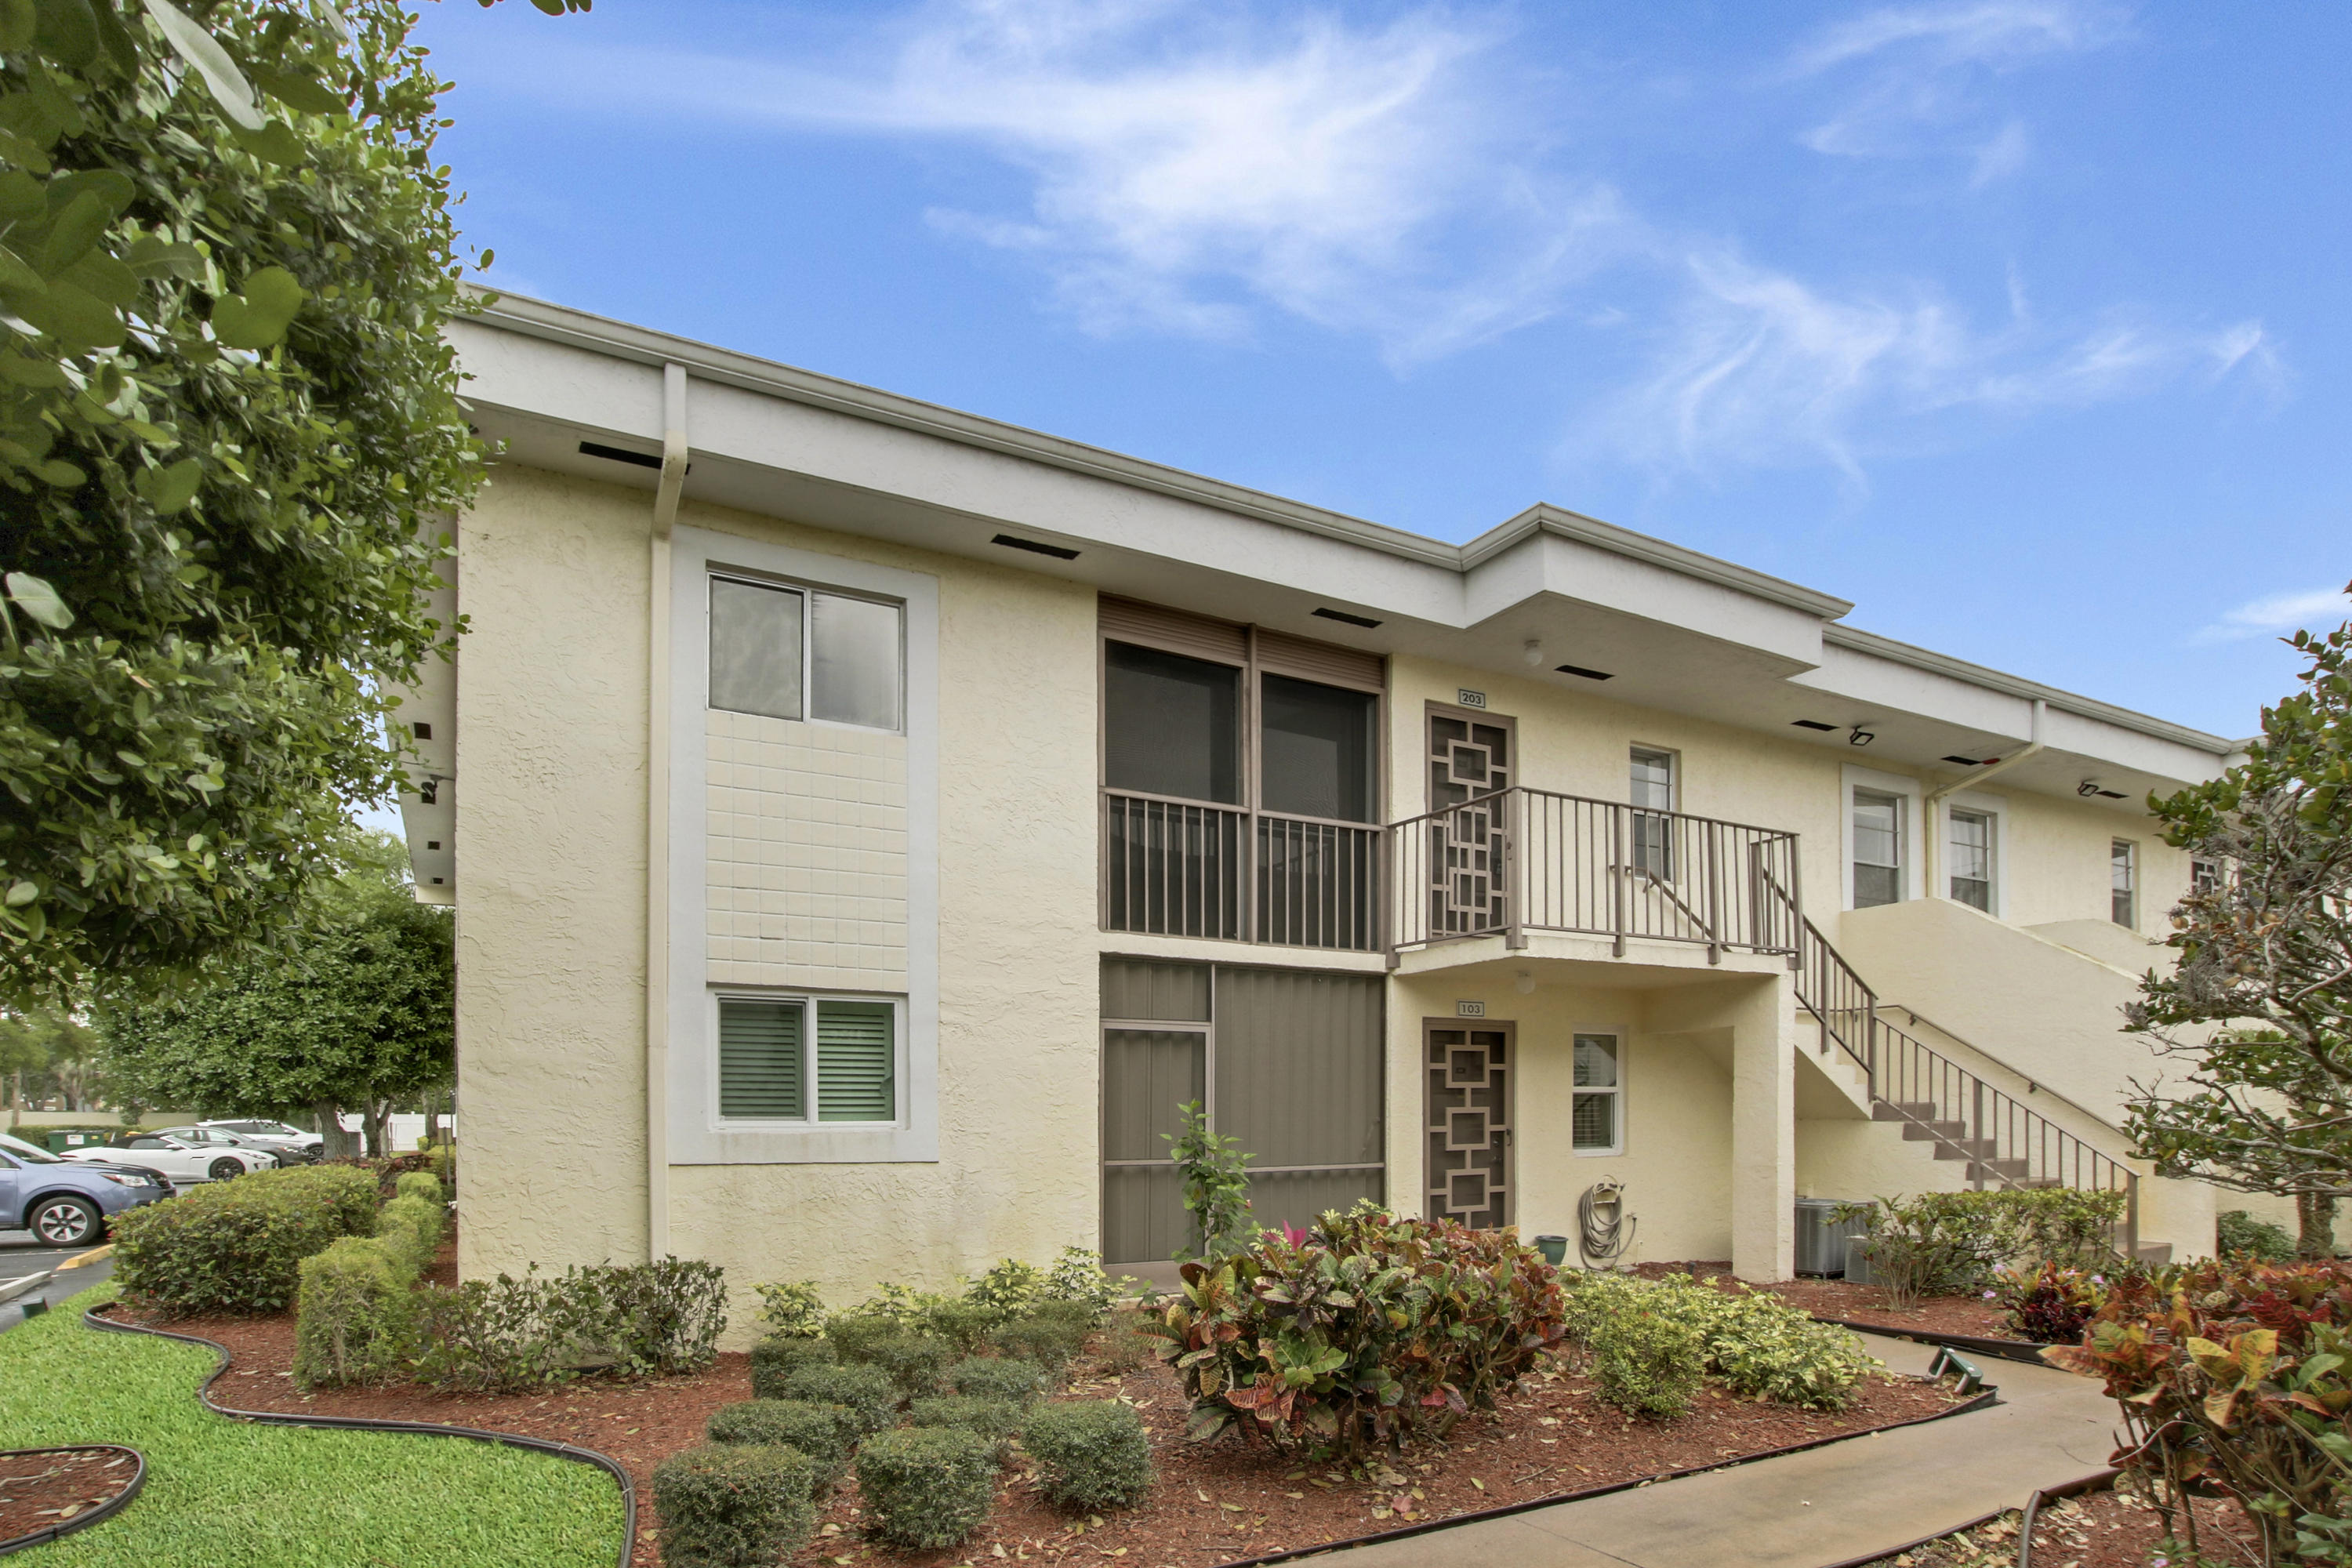 14905 Wedgefield Drive, Delray Beach, Florida 33446, 2 Bedrooms Bedrooms, ,2 BathroomsBathrooms,Condo/Coop,For Sale,Wedgefield Drive,2,RX-10520372